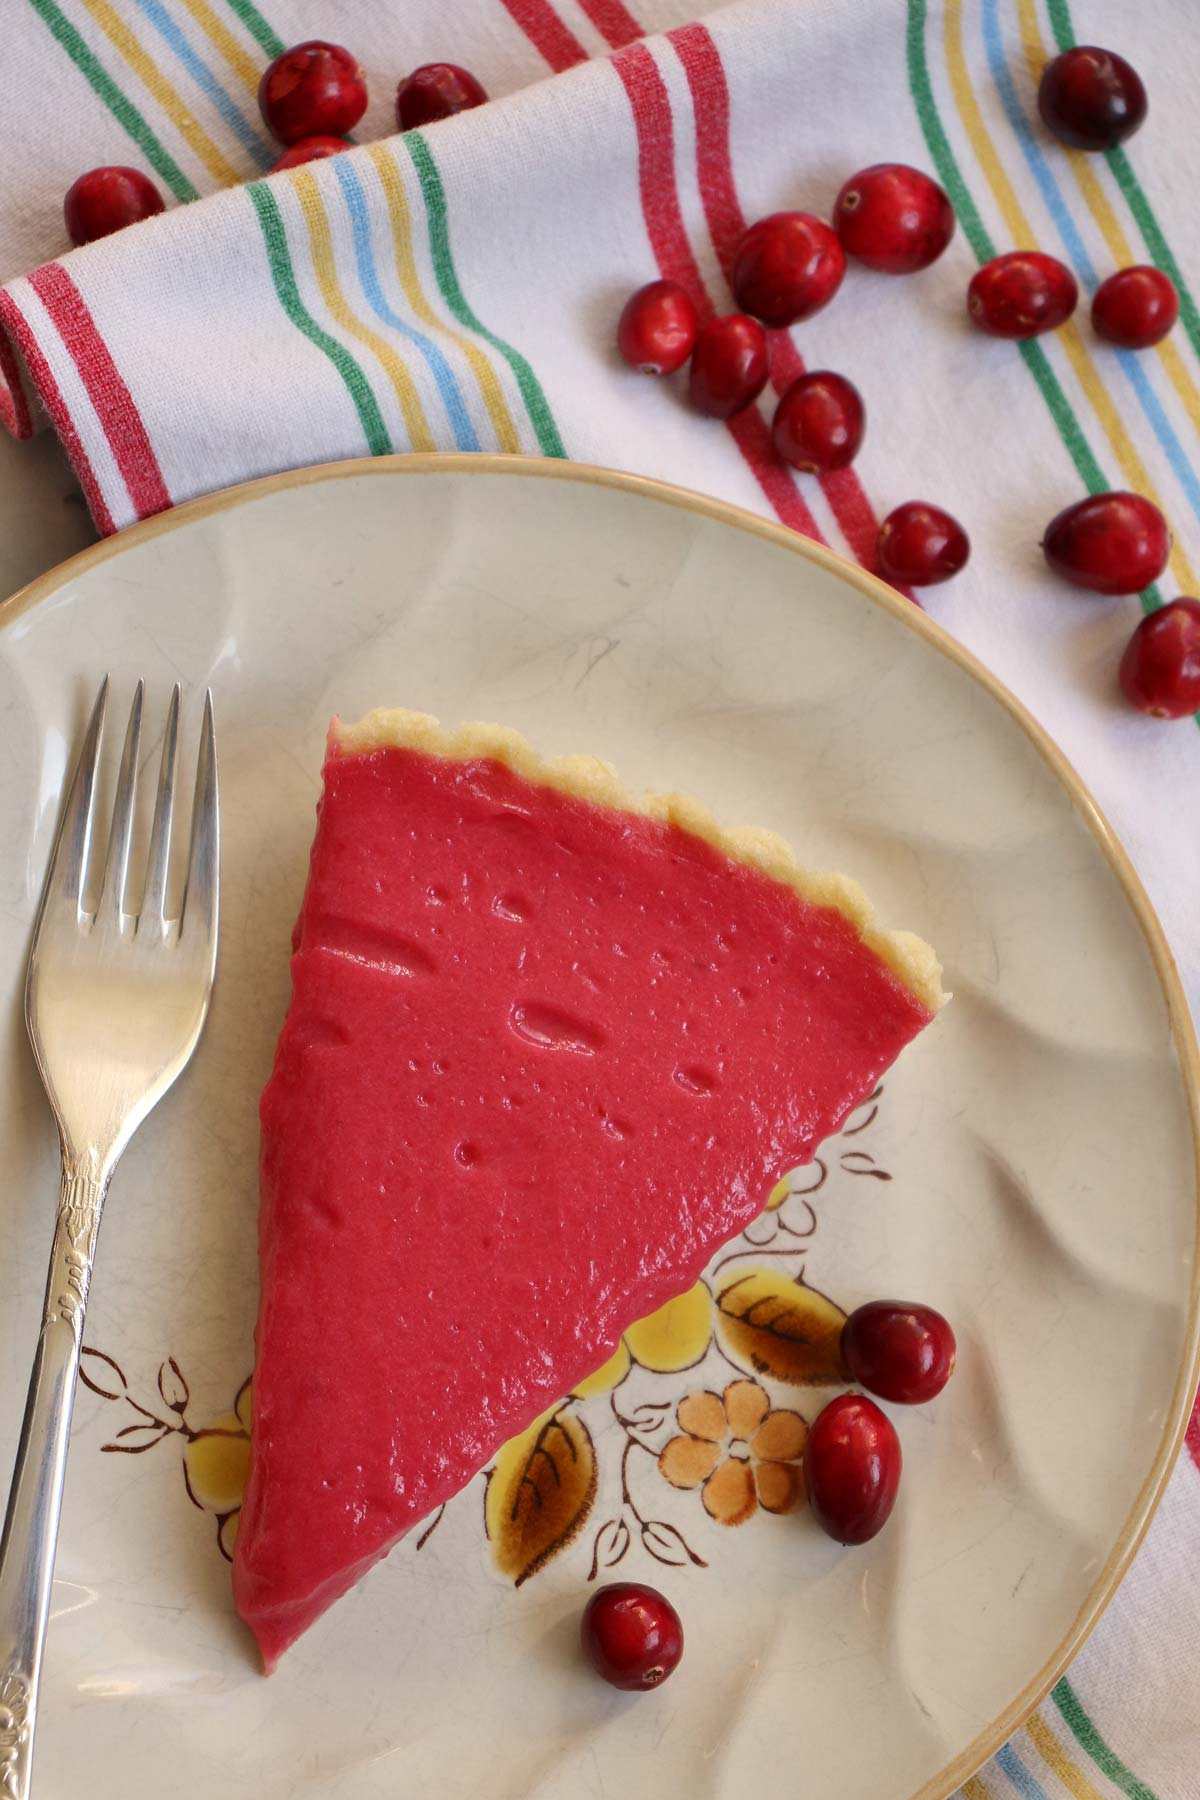 A slice of cranberry curd tart on a plate with a fork and fresh cranberries.